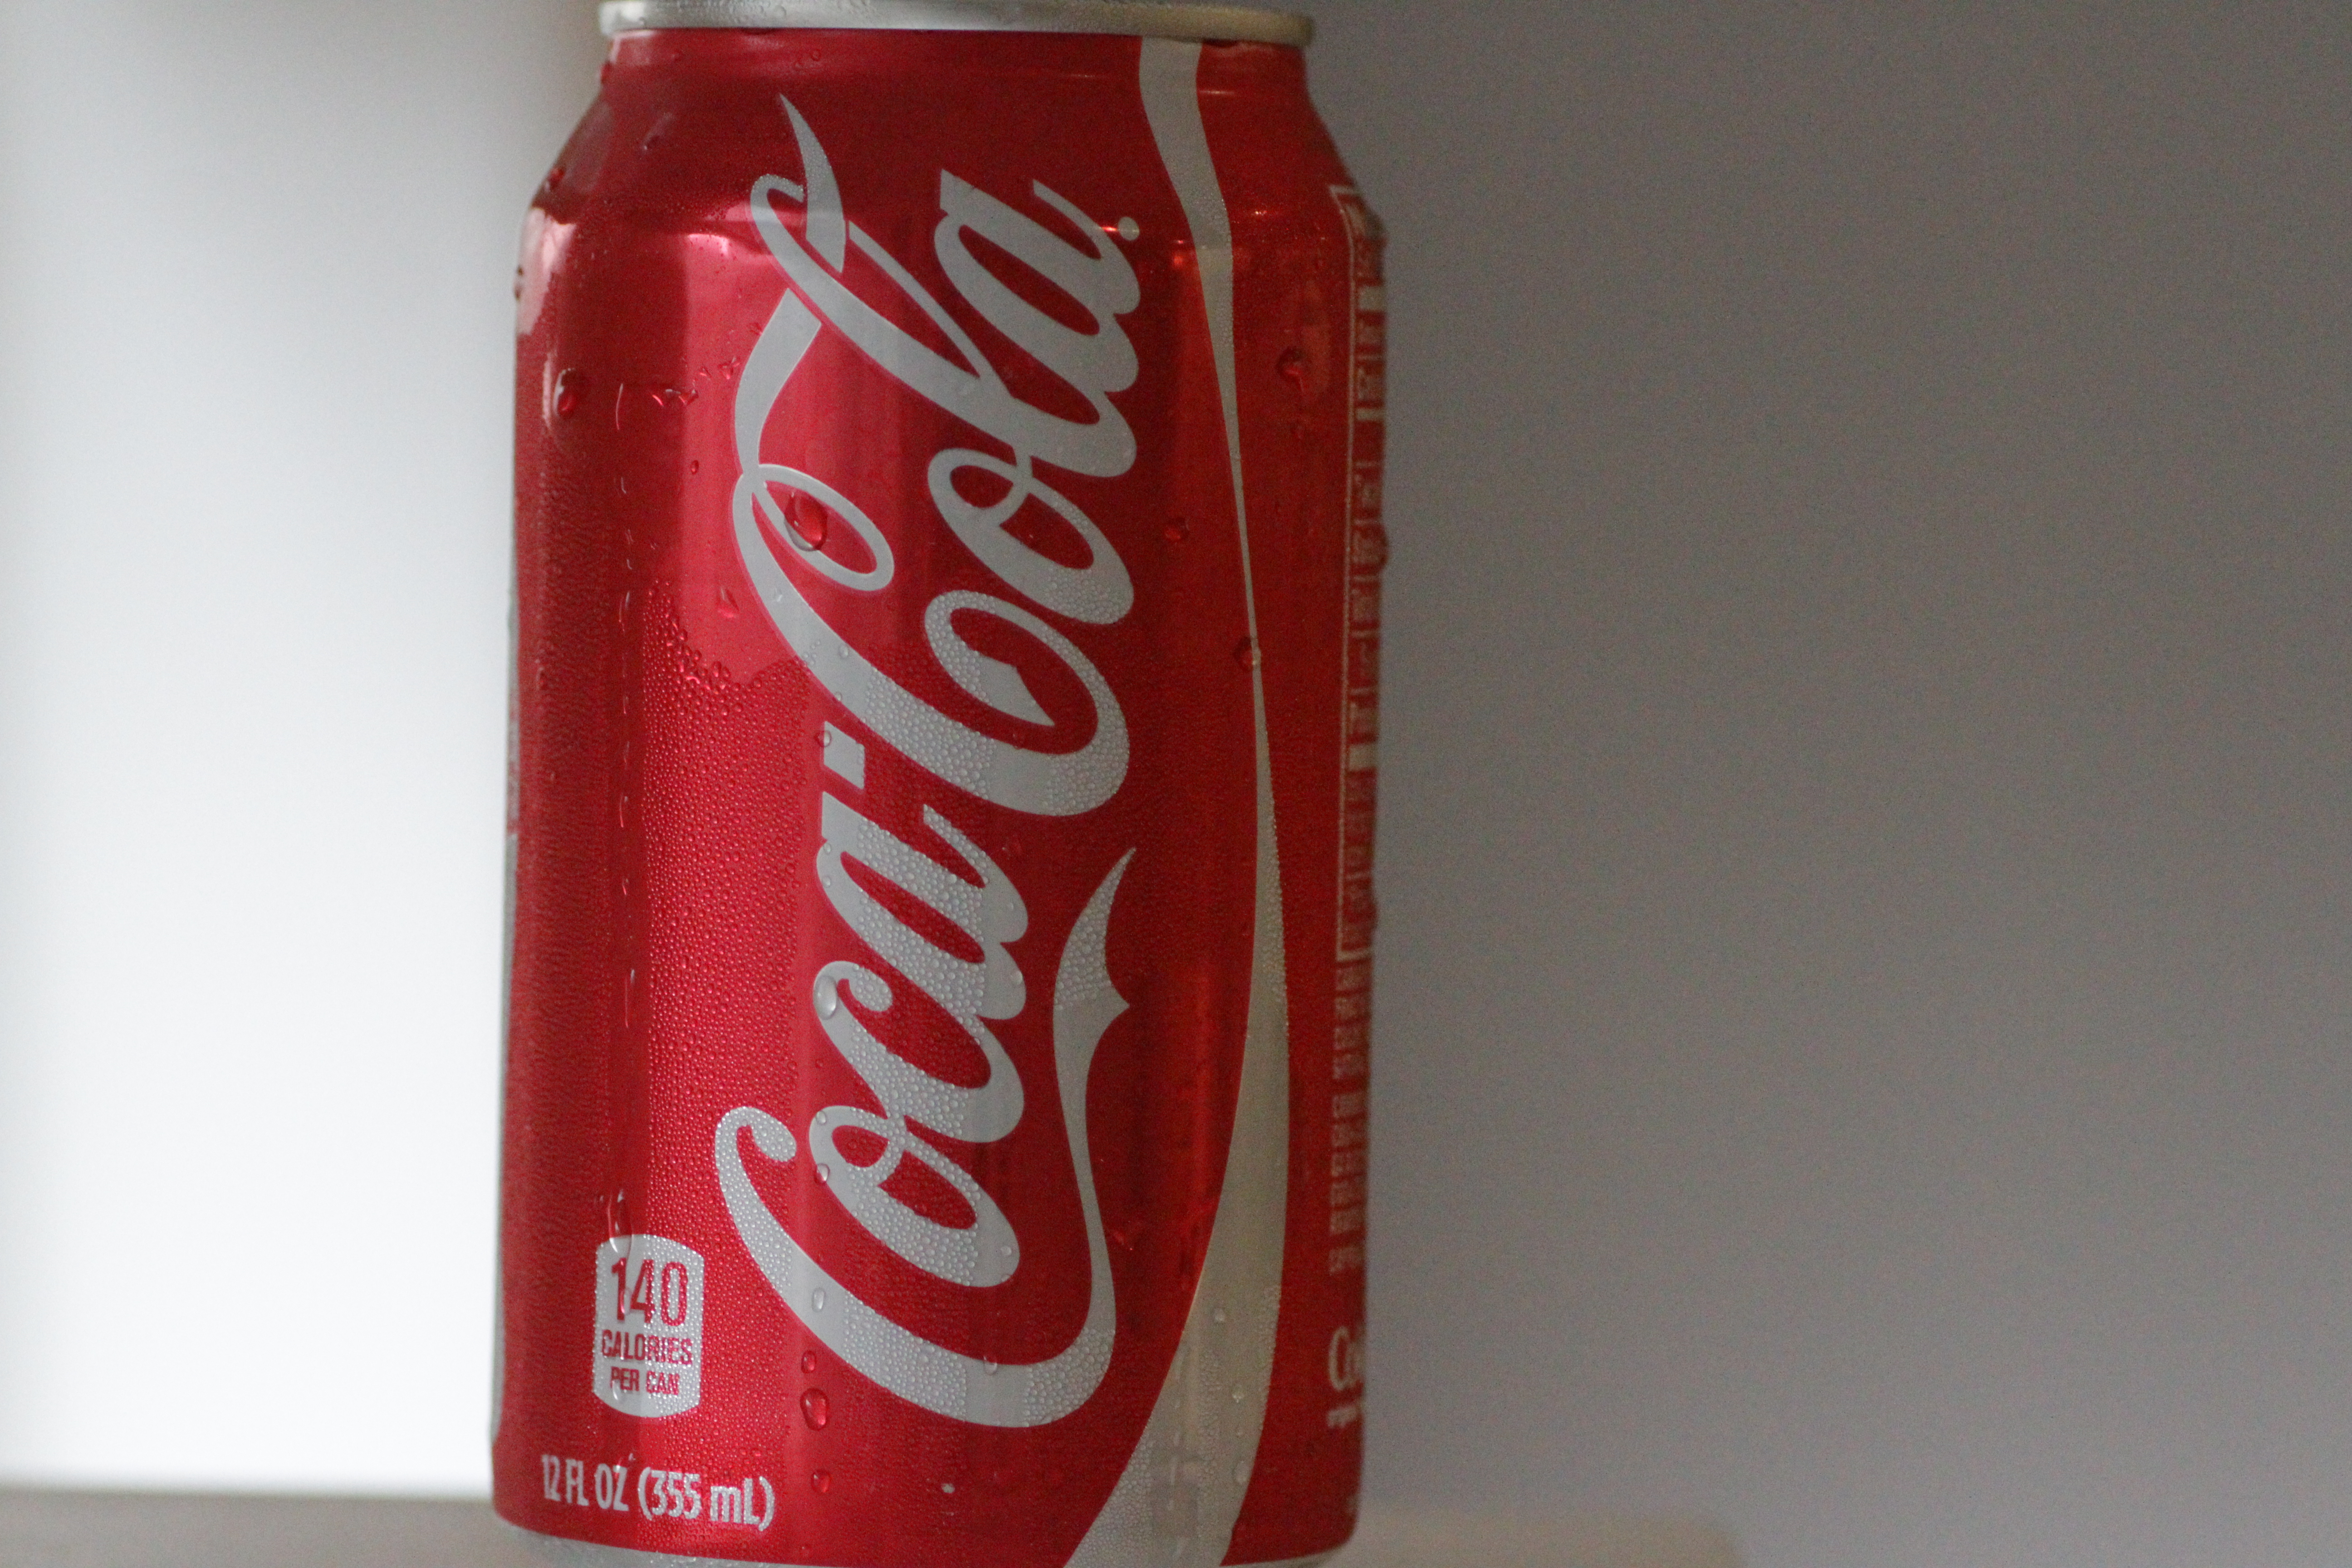 ELI5: What about Coca-Cola is so hard to replicate? The flavor of